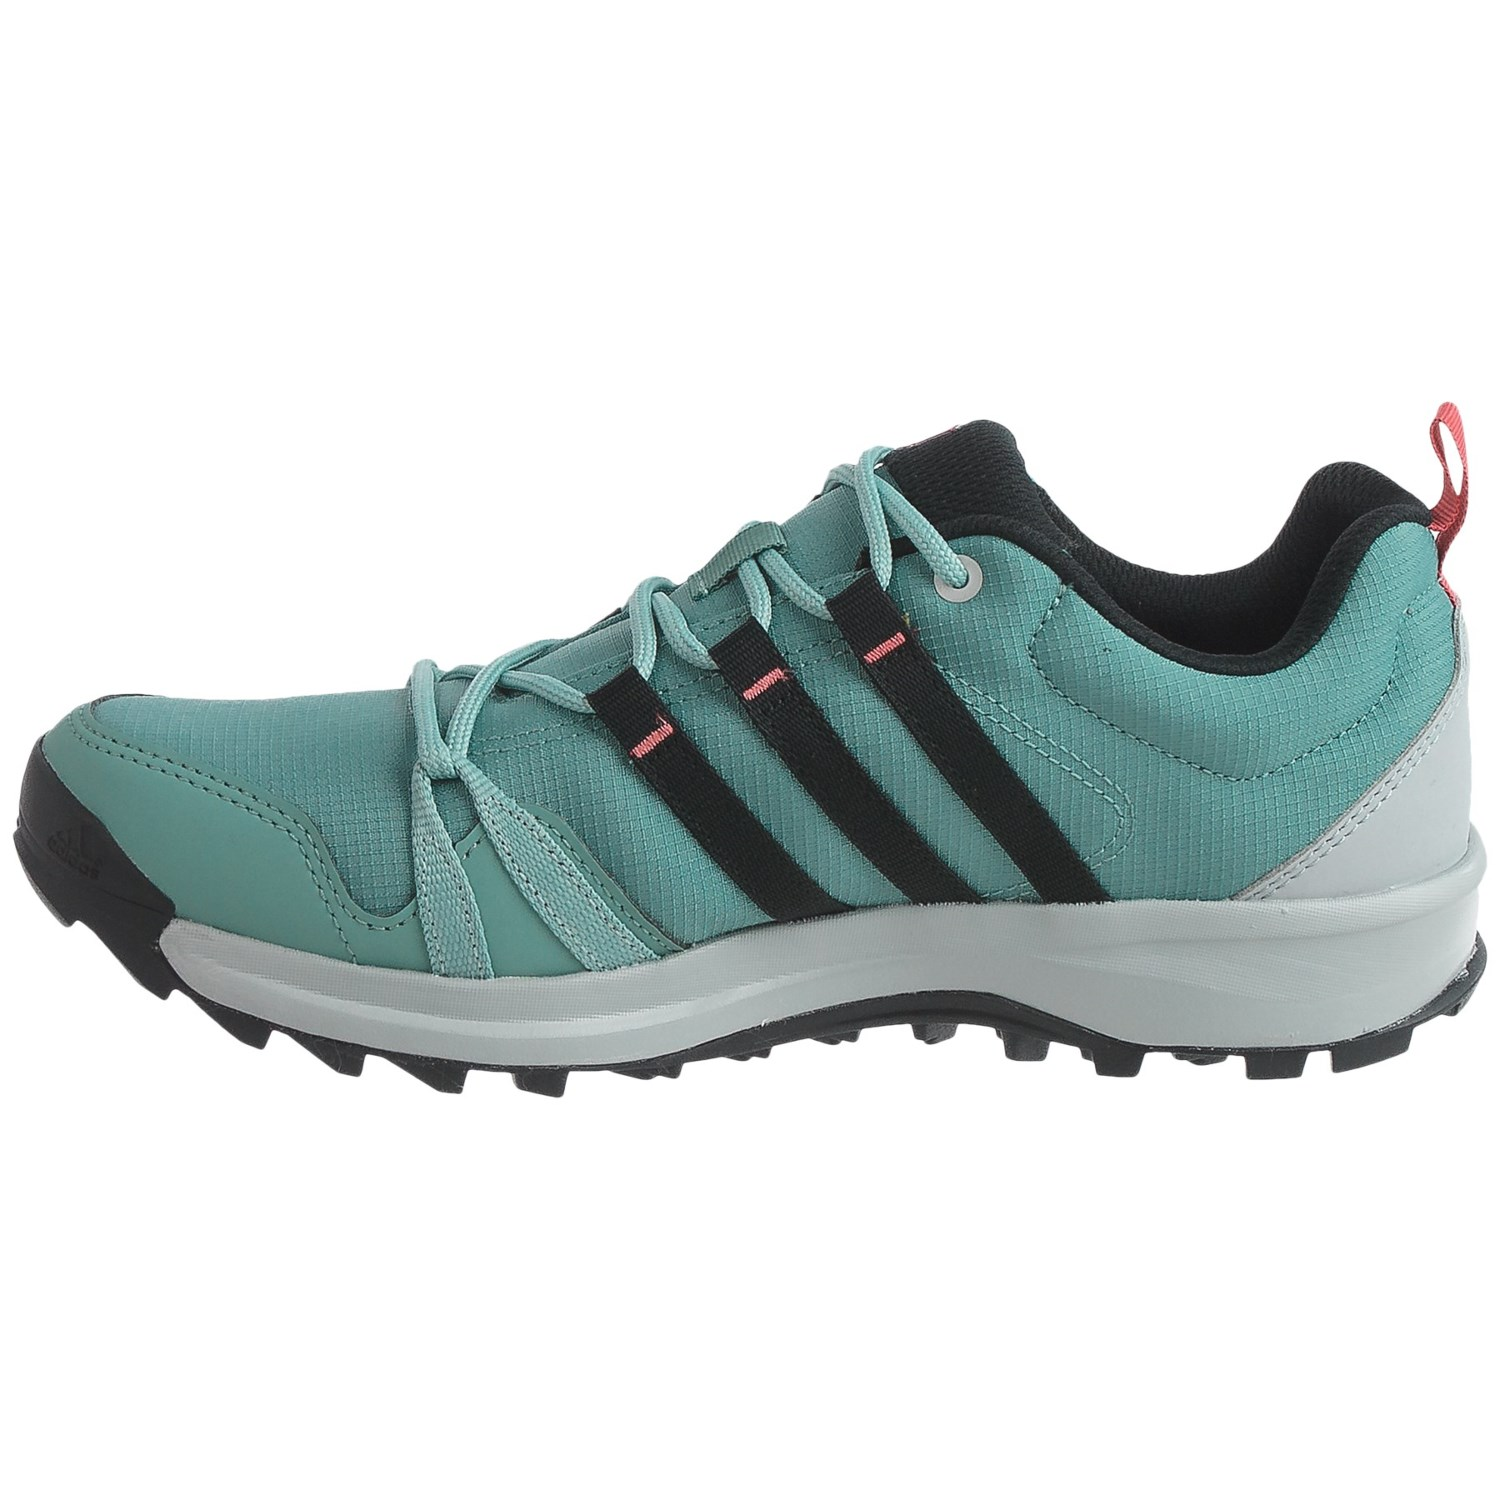 adidas outdoor Tracerocker Trail Running Shoes (For Women)